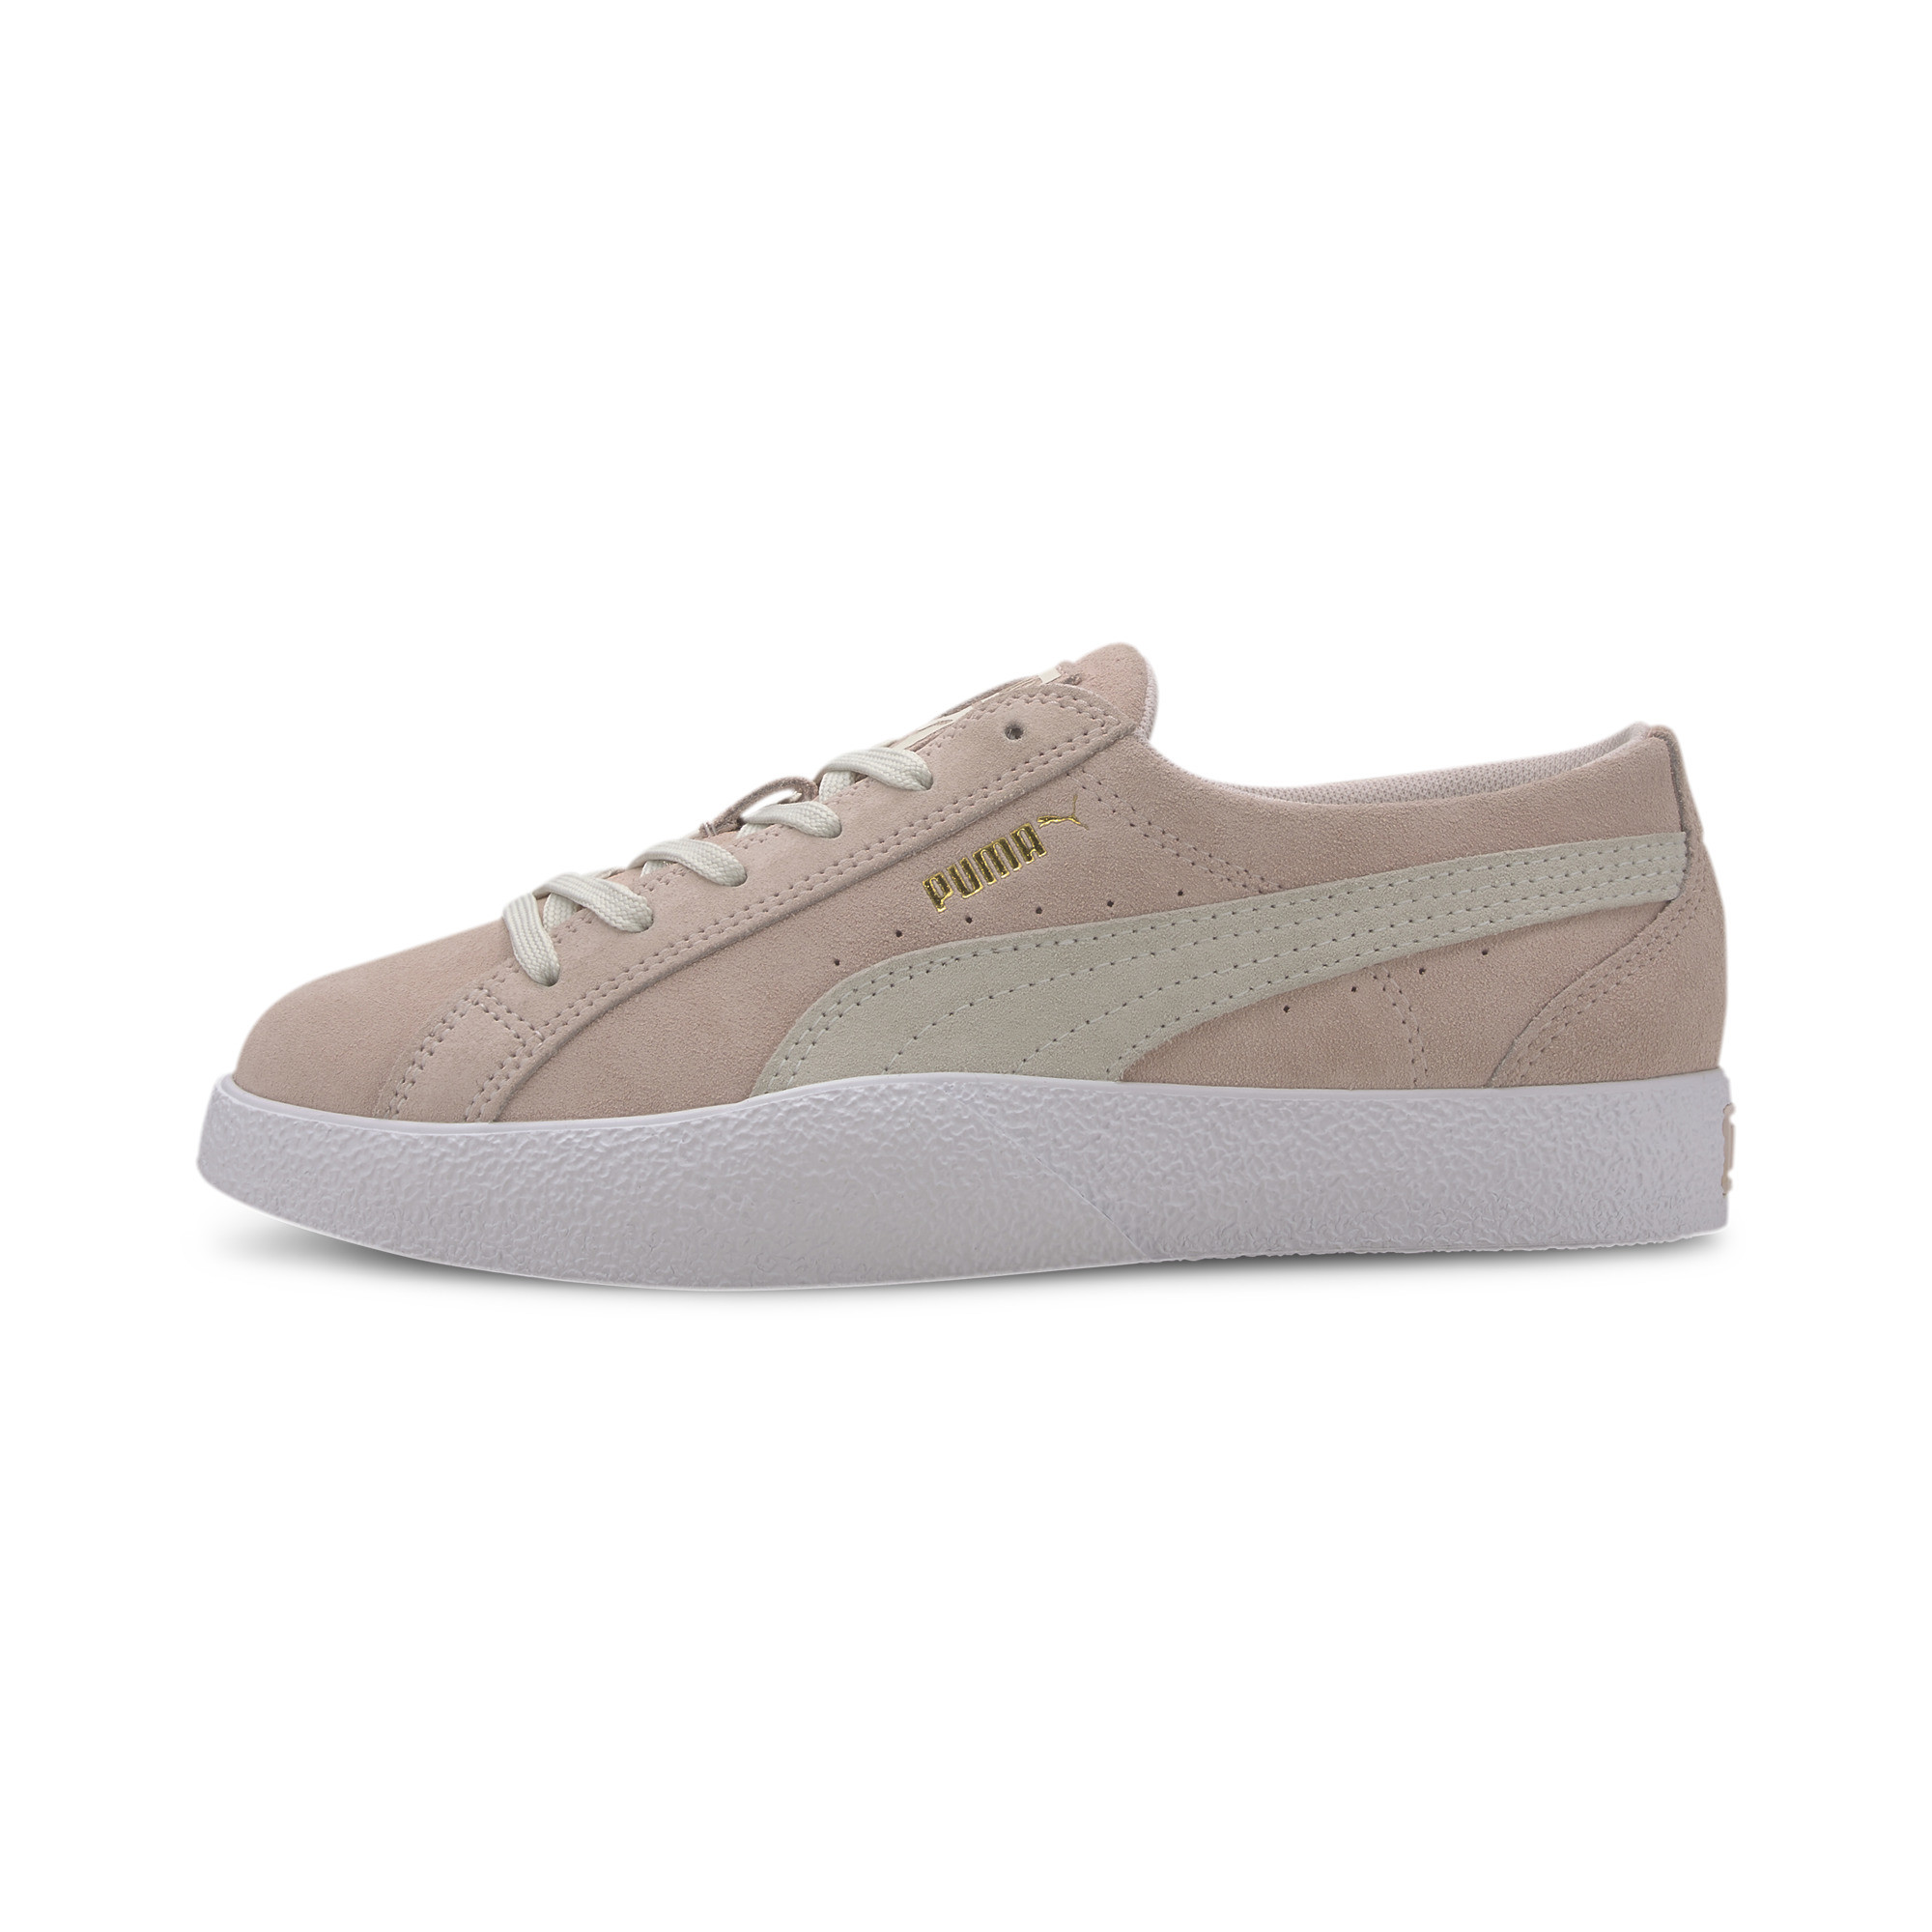 PUMA-Women-039-s-Love-Suede-Sneakers thumbnail 4